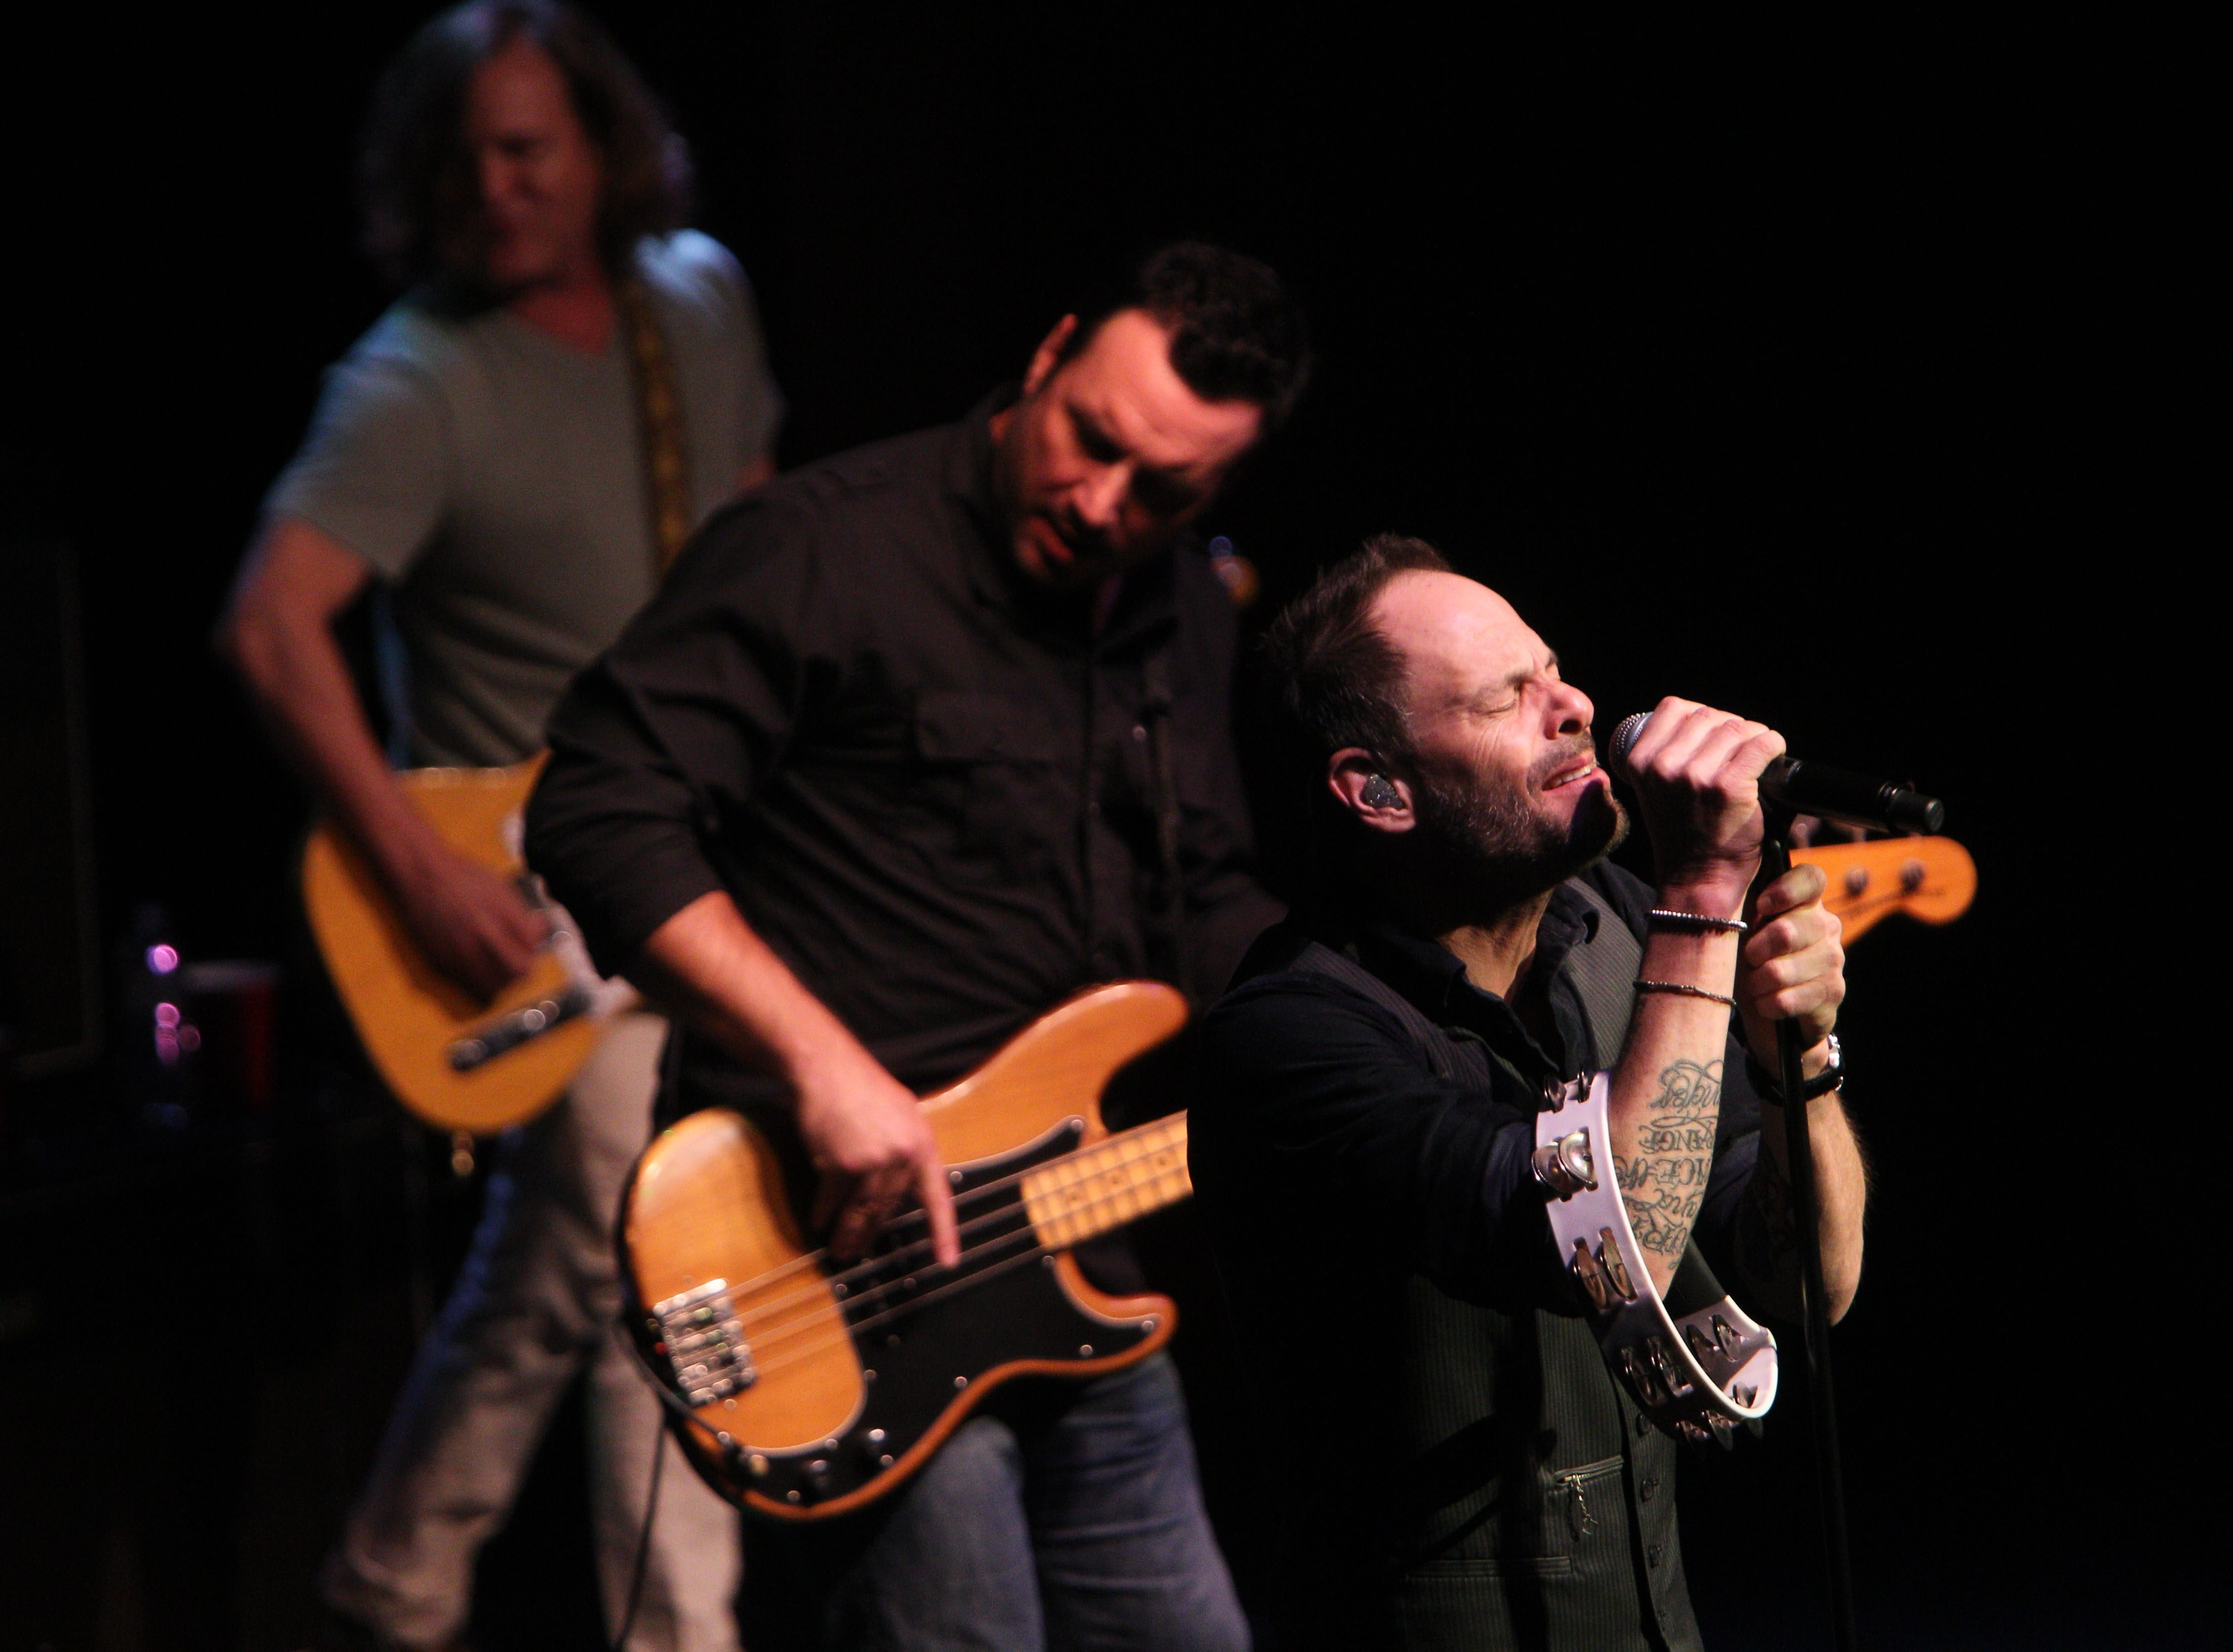 The Gin Blossoms kept fans on their feet for most of the band's performance at the Seneca Niagara Casino Bear's Den on Friday.